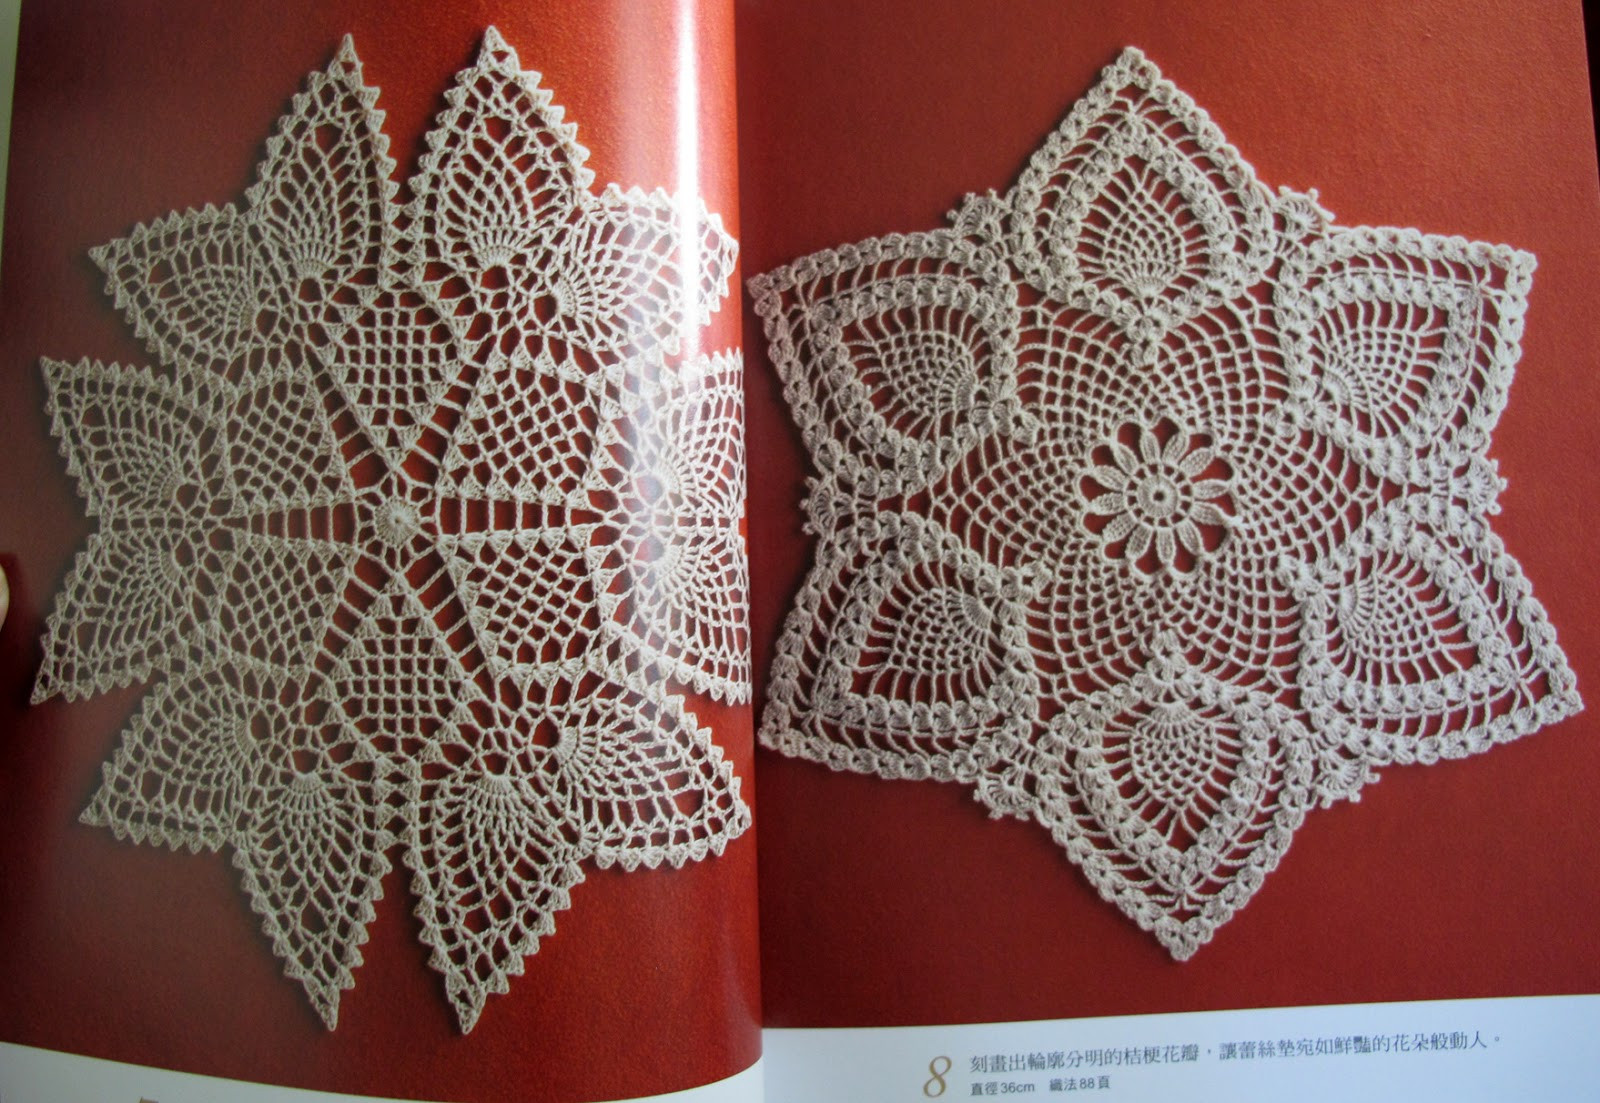 Pineapple Doily Luxury My Doll Side Japanese Crochet Doily Book Of Top 46 Photos Pineapple Doily